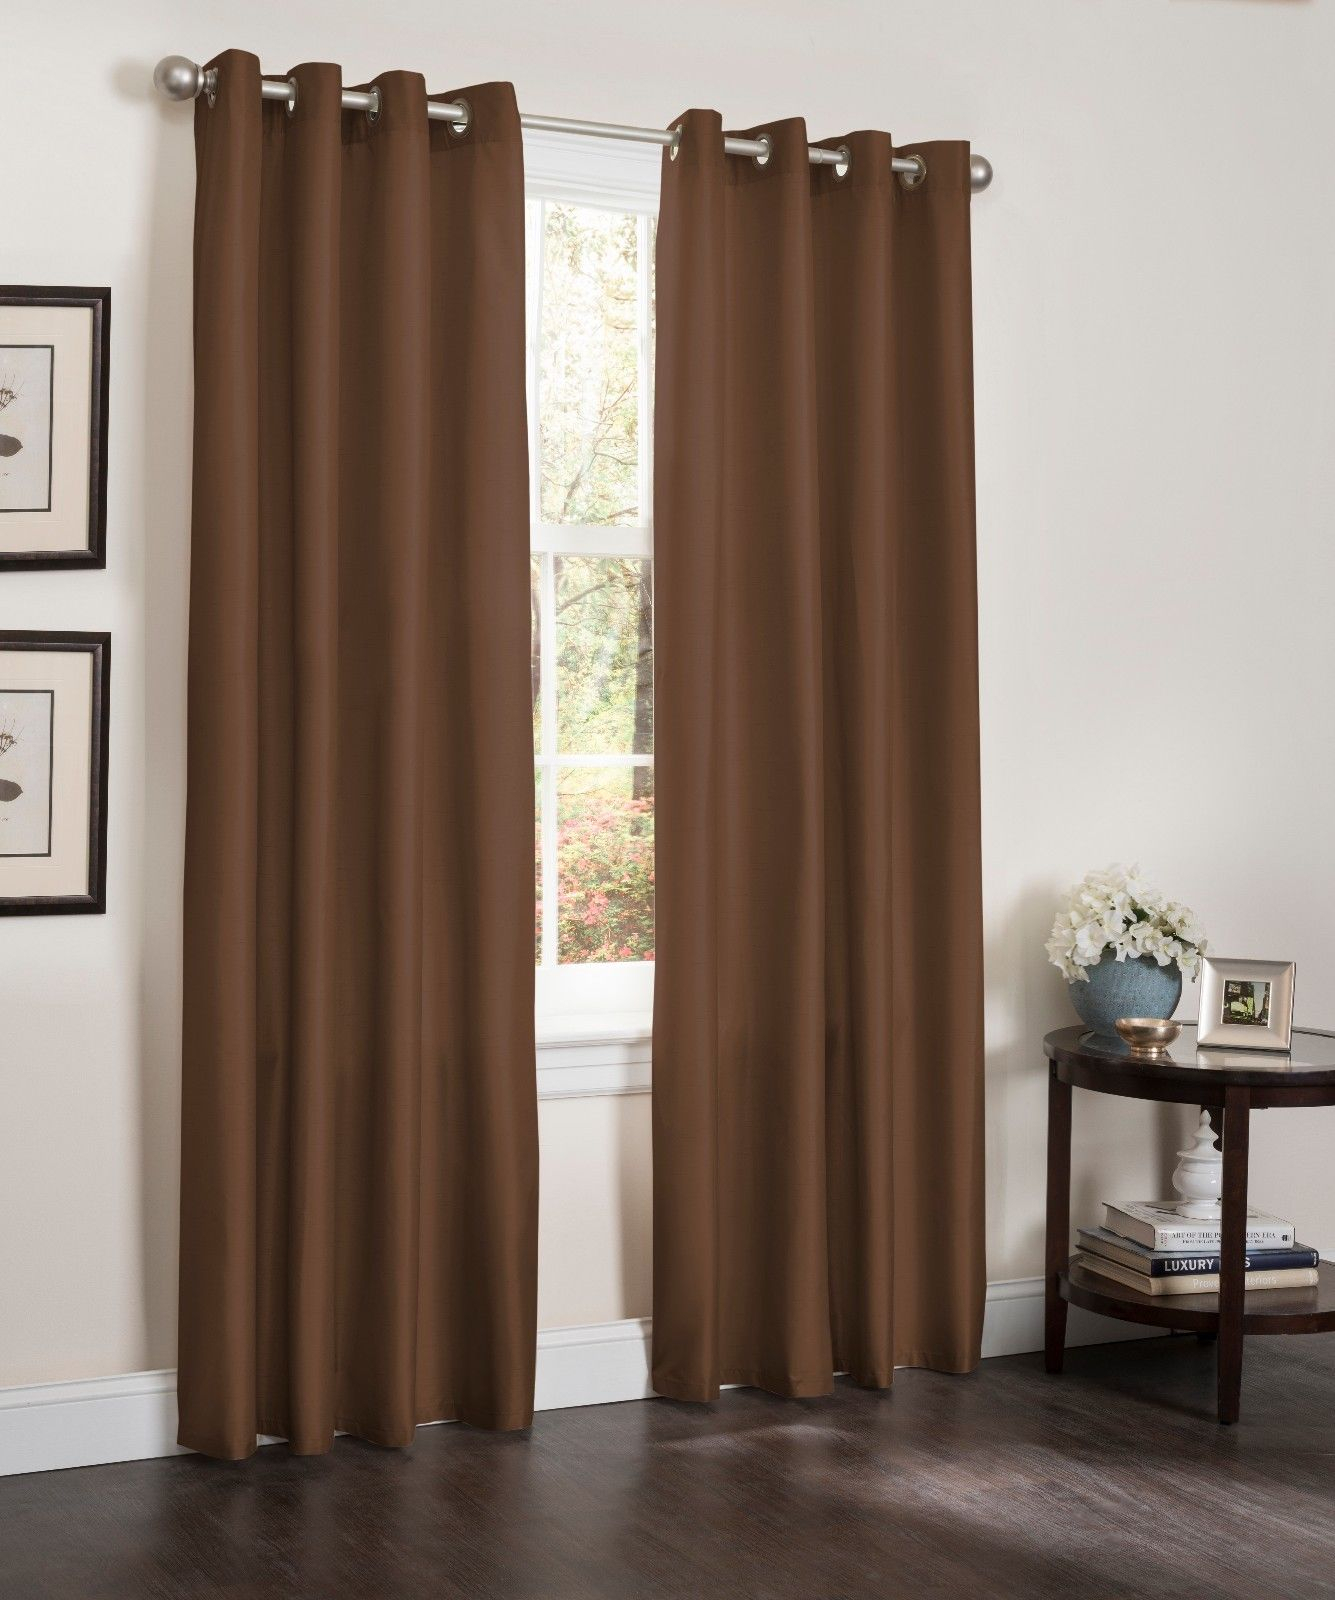 "Blackout Window Curtain Panel, 54"" X 90"", Faux Silk Thermal Insulated Grommet Top, Erin, 1 Panel (Chocolate) For Insulated Blackout Grommet Window Curtain Panel Pairs (View 6 of 20)"